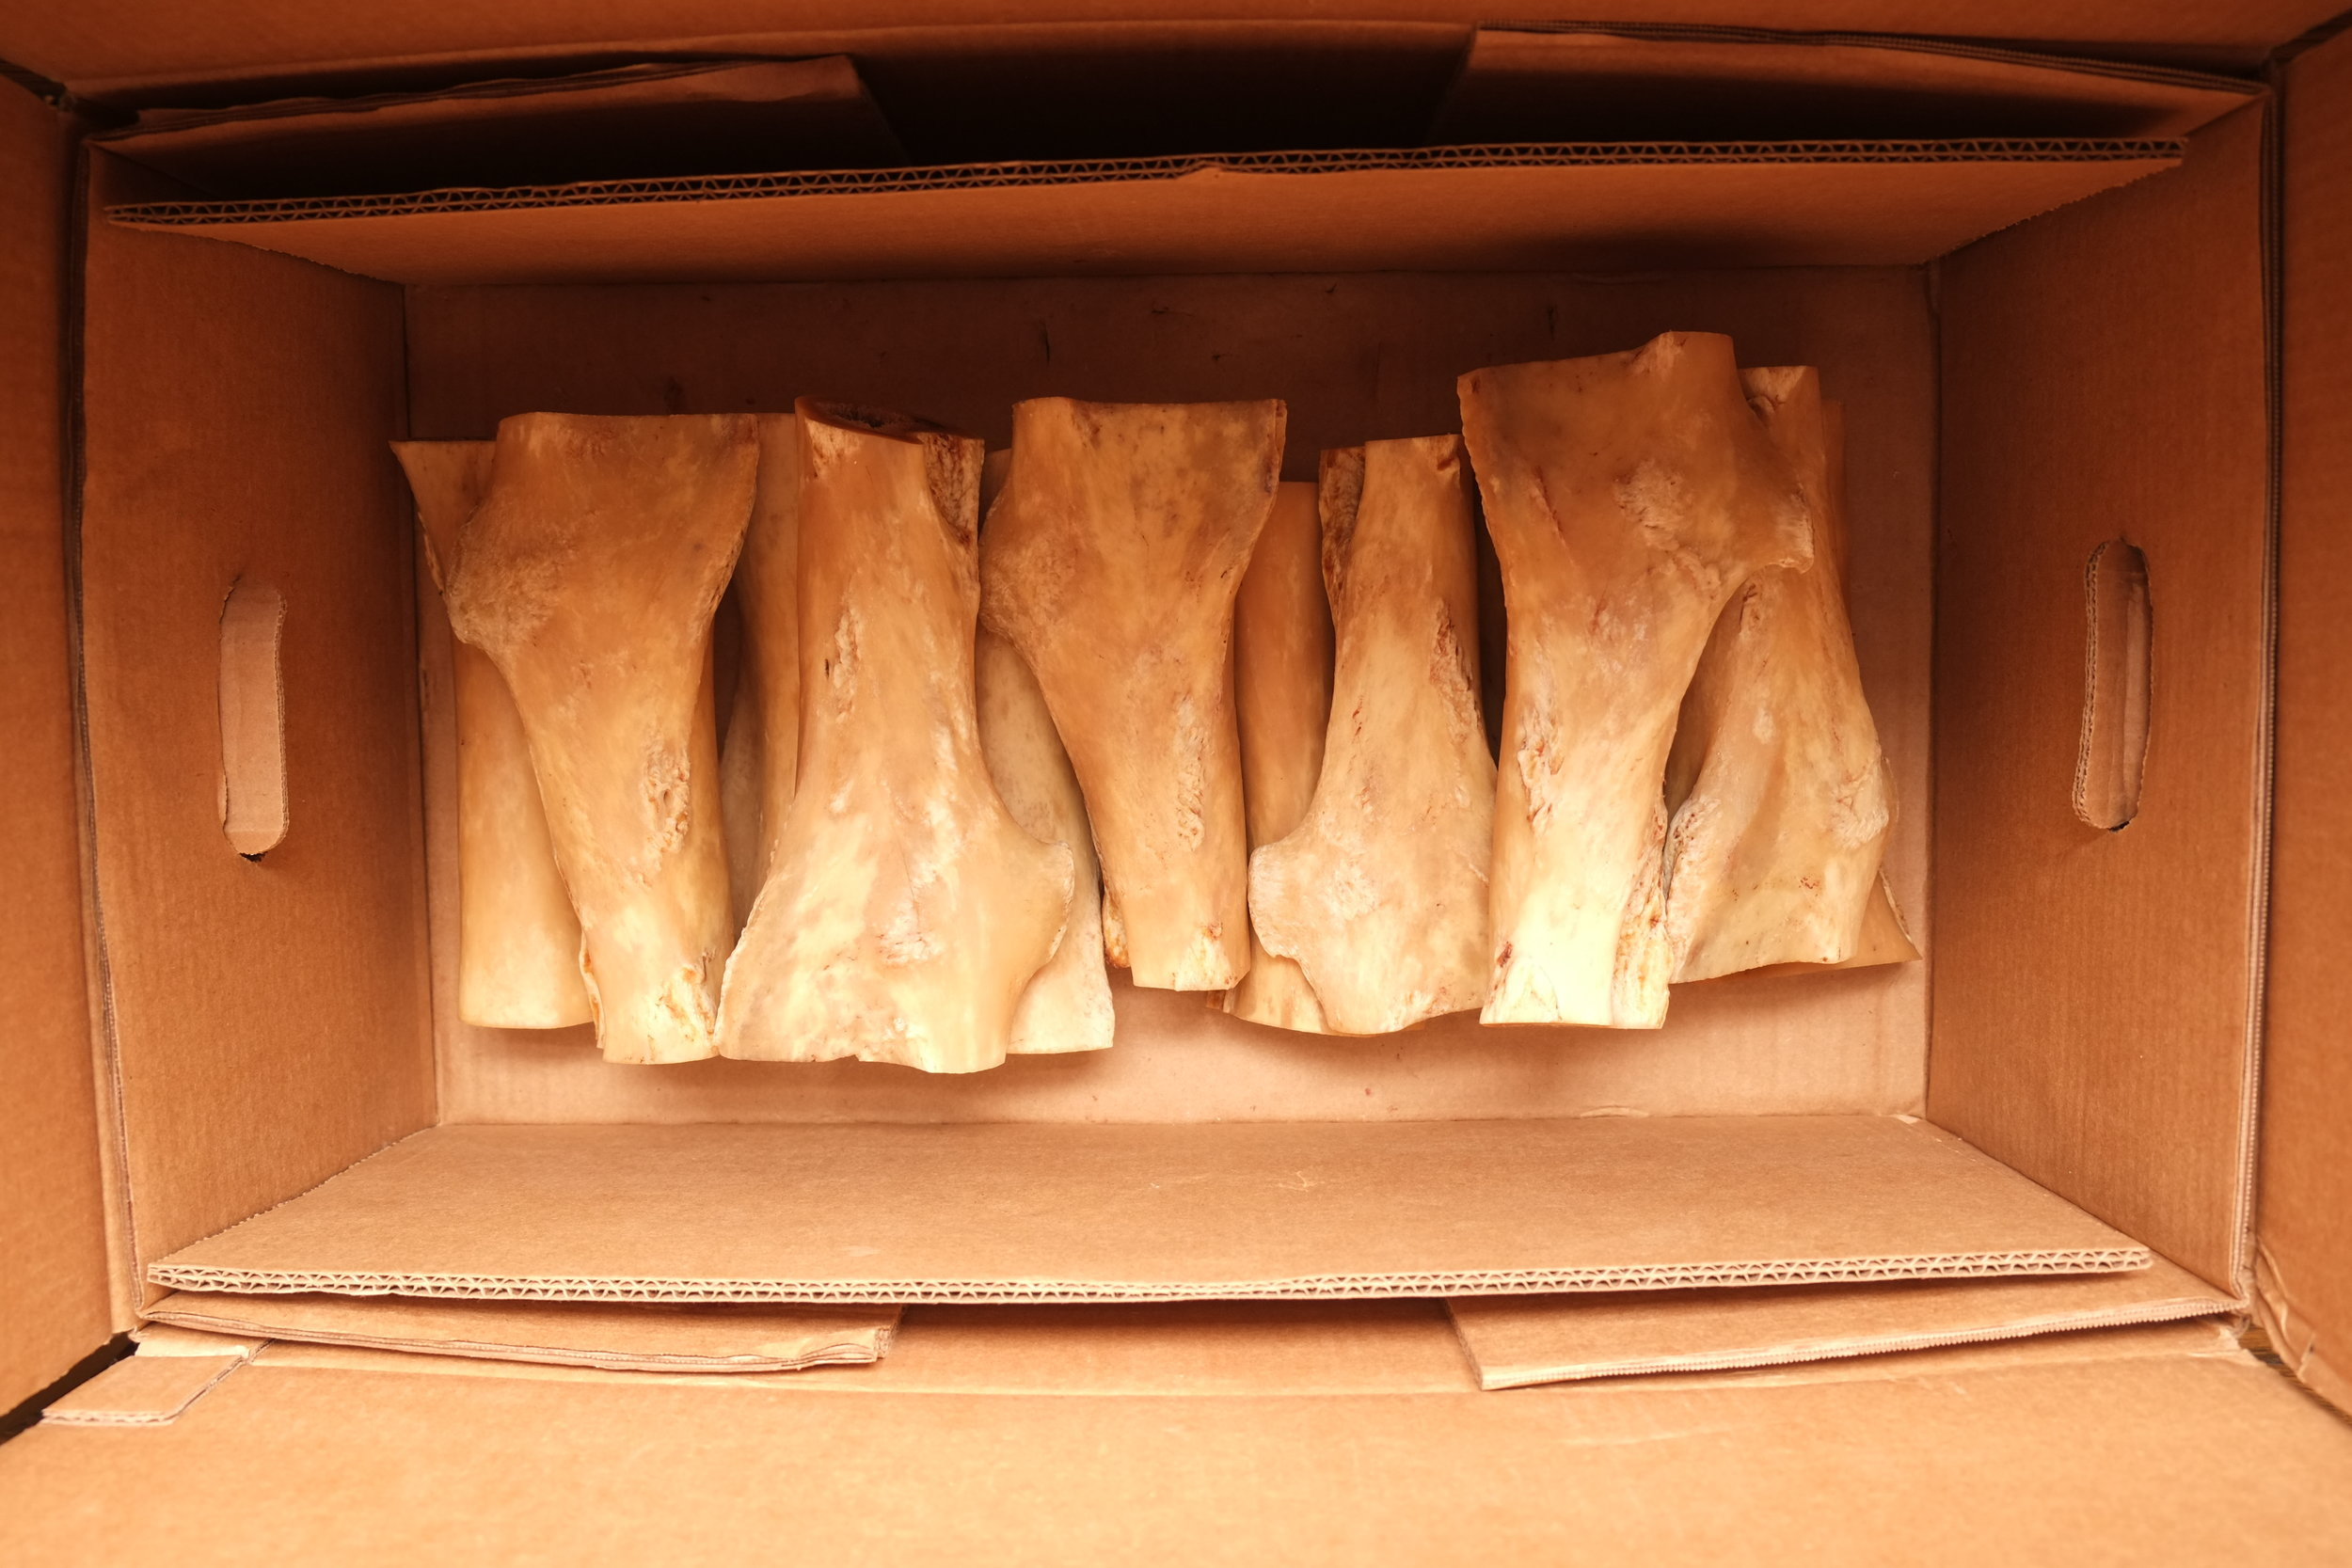 Some of the 23 horse femurs cleaned, ready to be cut for the production of the bowls.